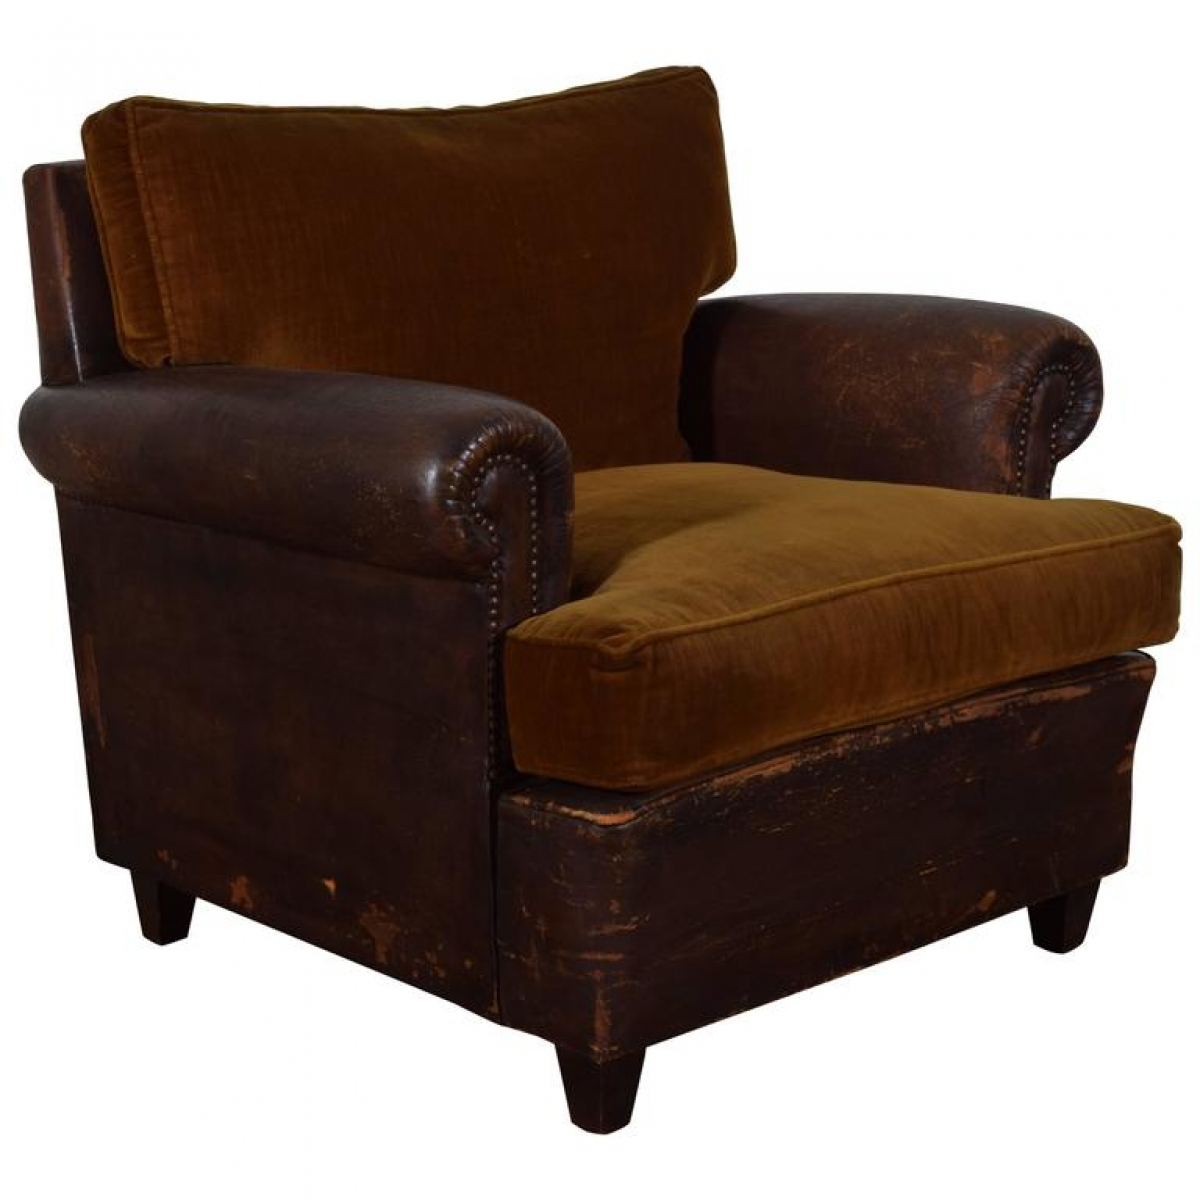 Leather upholstered and velvet club chair for Small club chairs upholstered